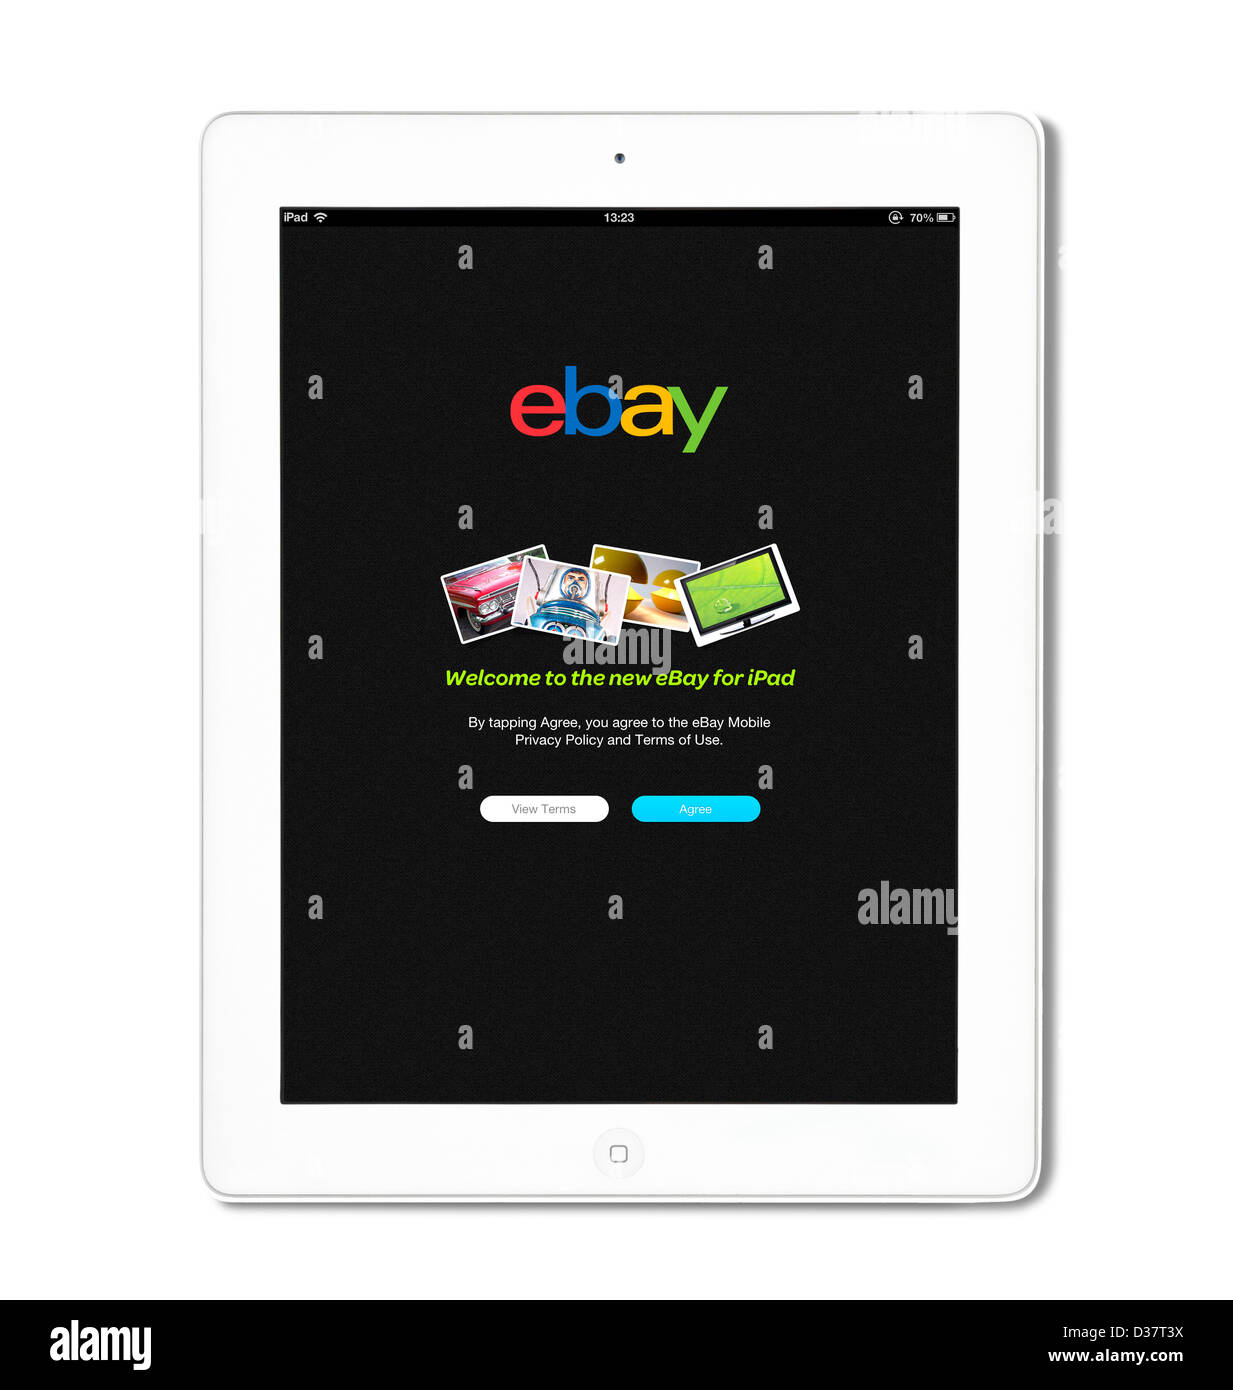 The ebay app on a 4th generation Apple iPad tablet computer - Stock Image